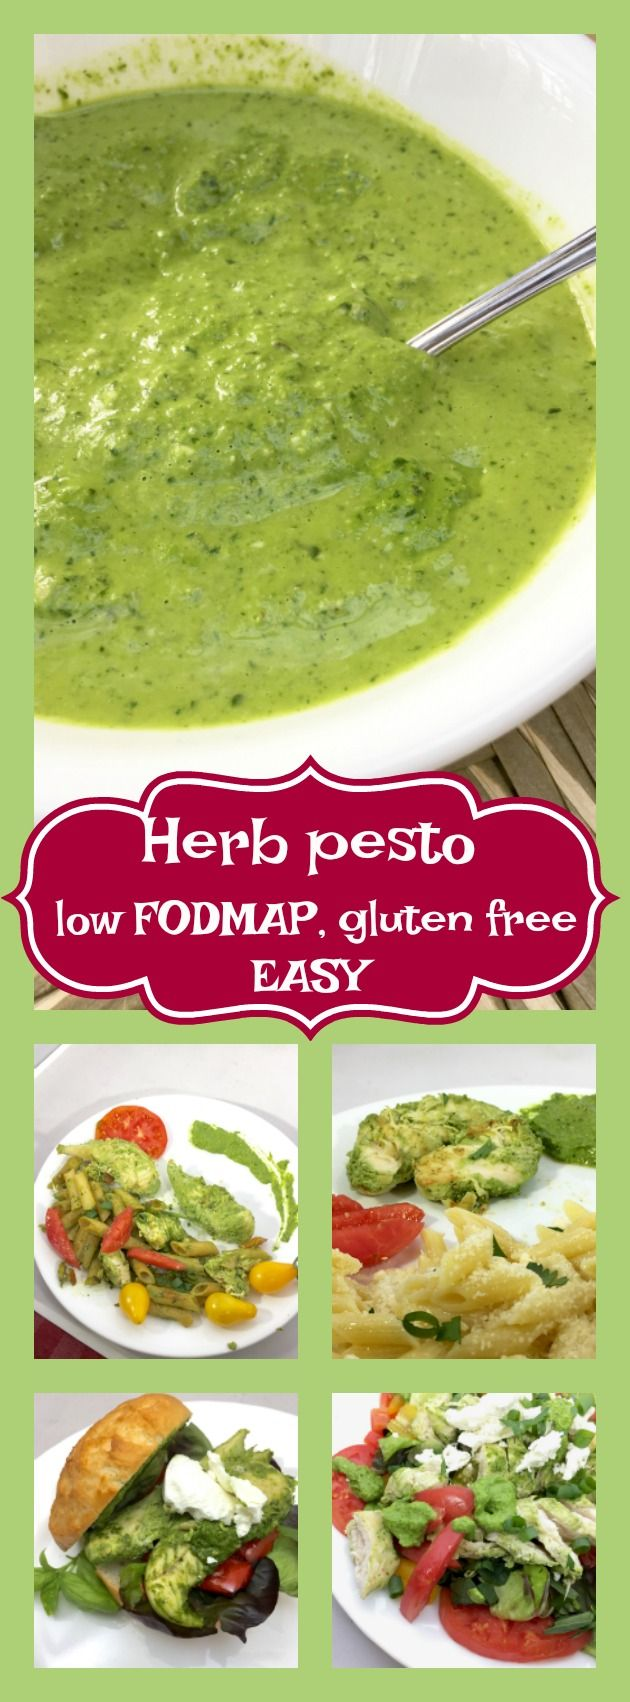 Healthy herby pesto with chicken three ways #familyrecipes